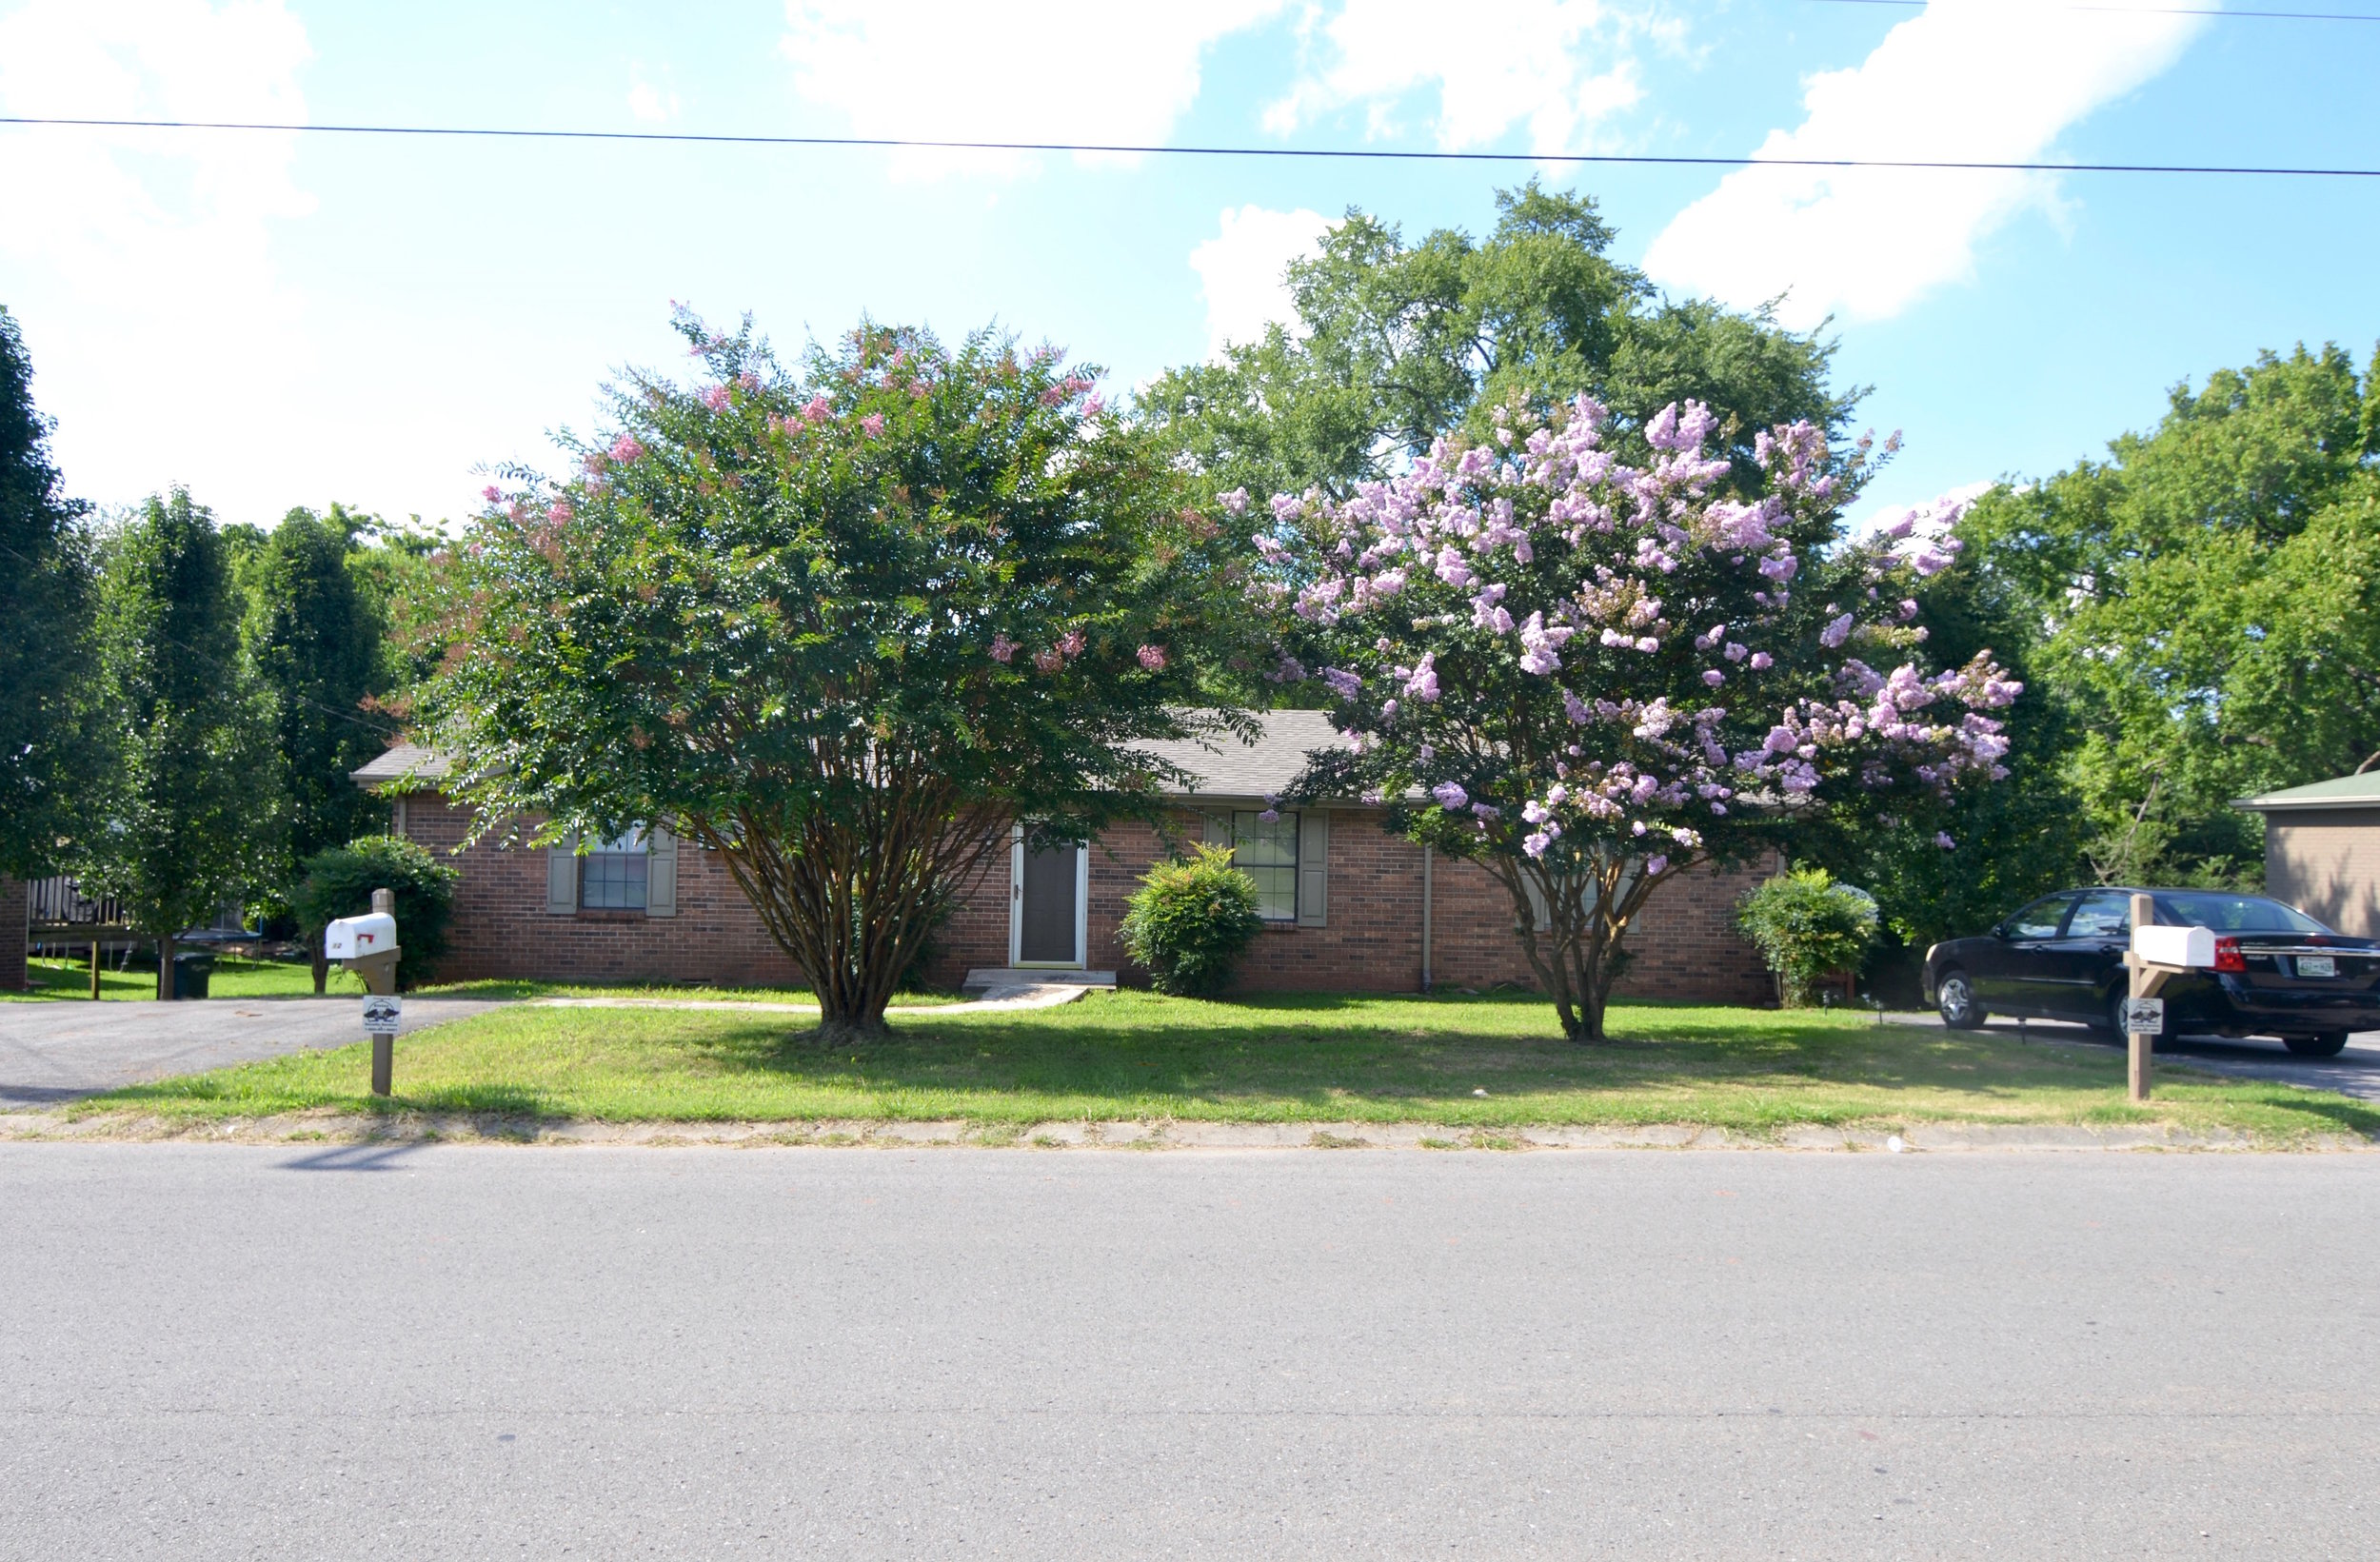 1205 /1207 RENTED (100% Remodeled) MADISON: 1205/07 Sioux Terrace: Duplex: 2 Br, 1 Ba